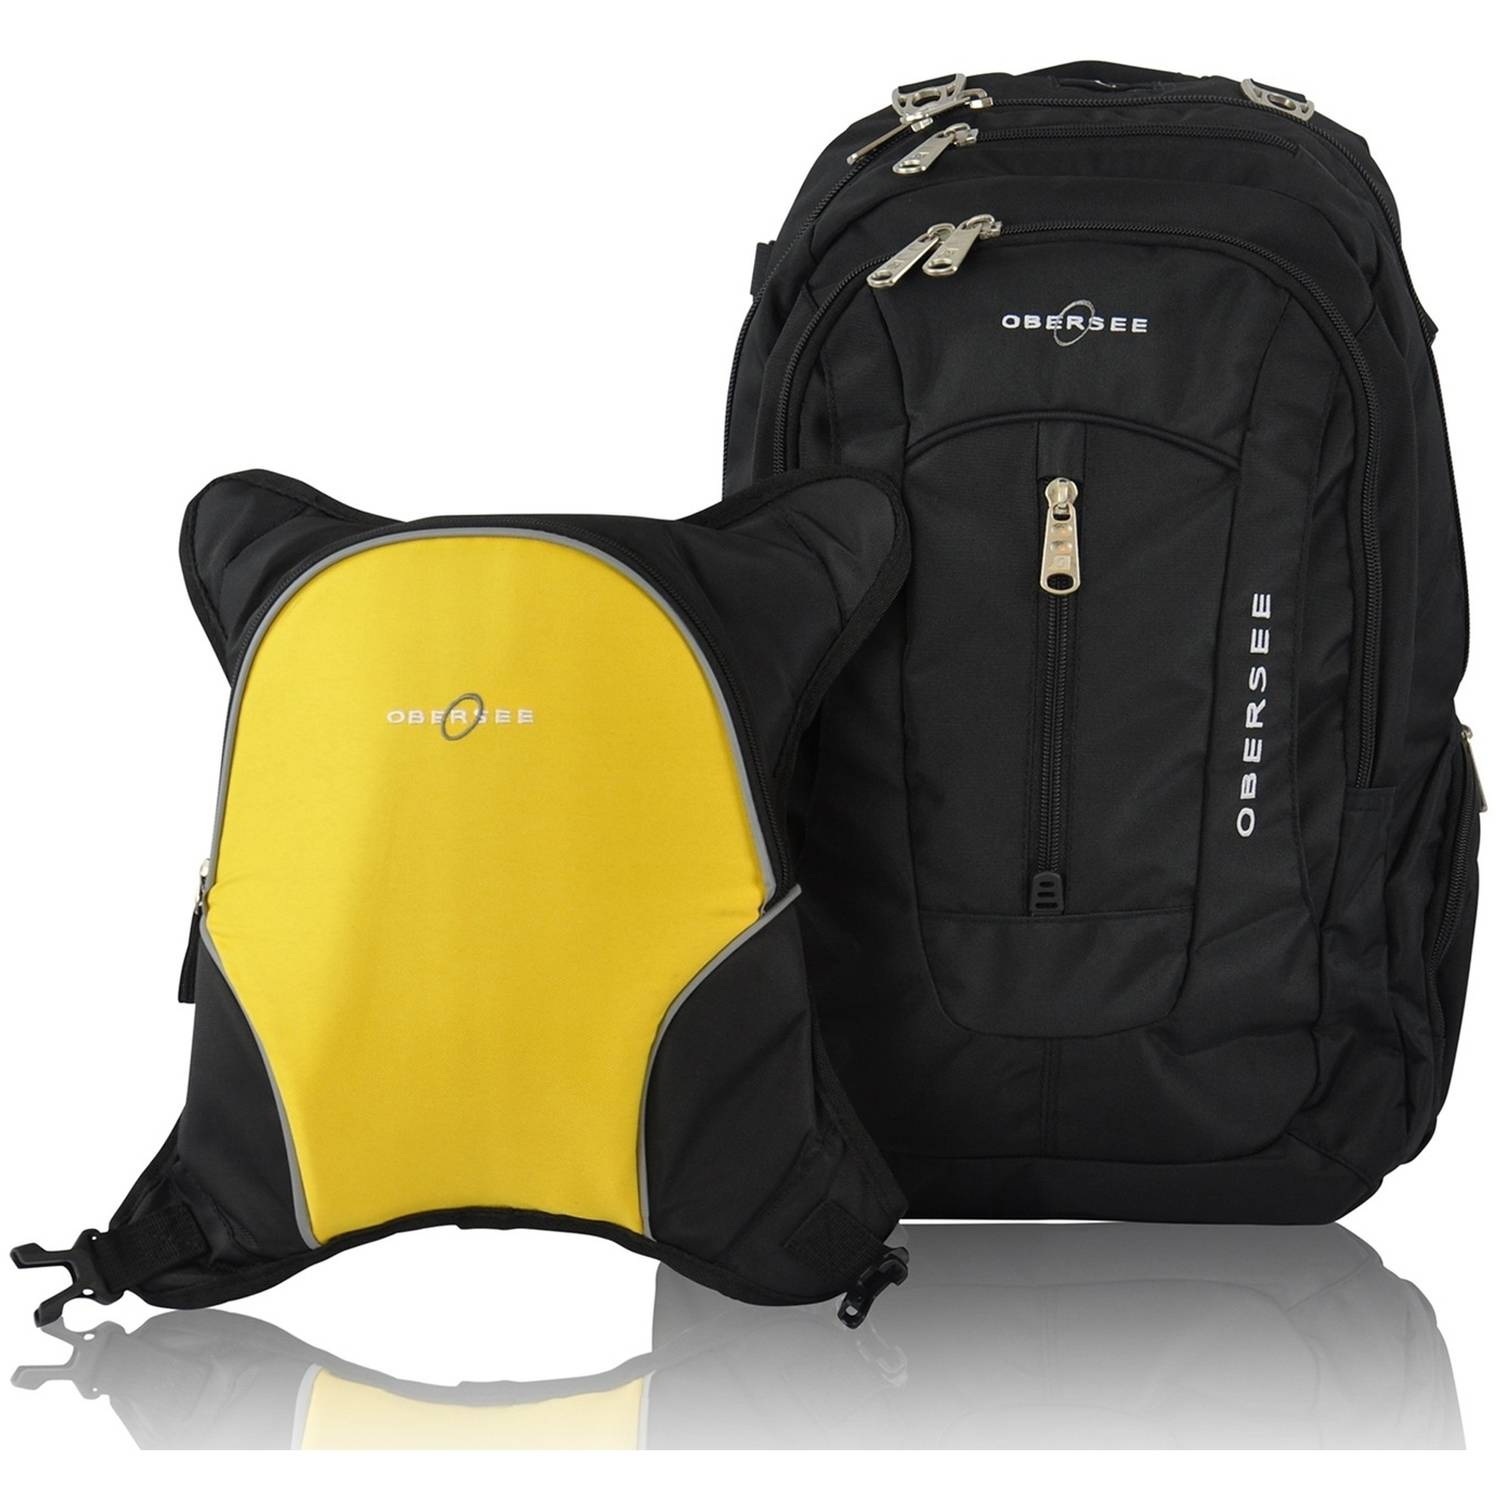 Obersee Bern Diaper Bag Backpack and Cooler, Black Yellow by Obersee